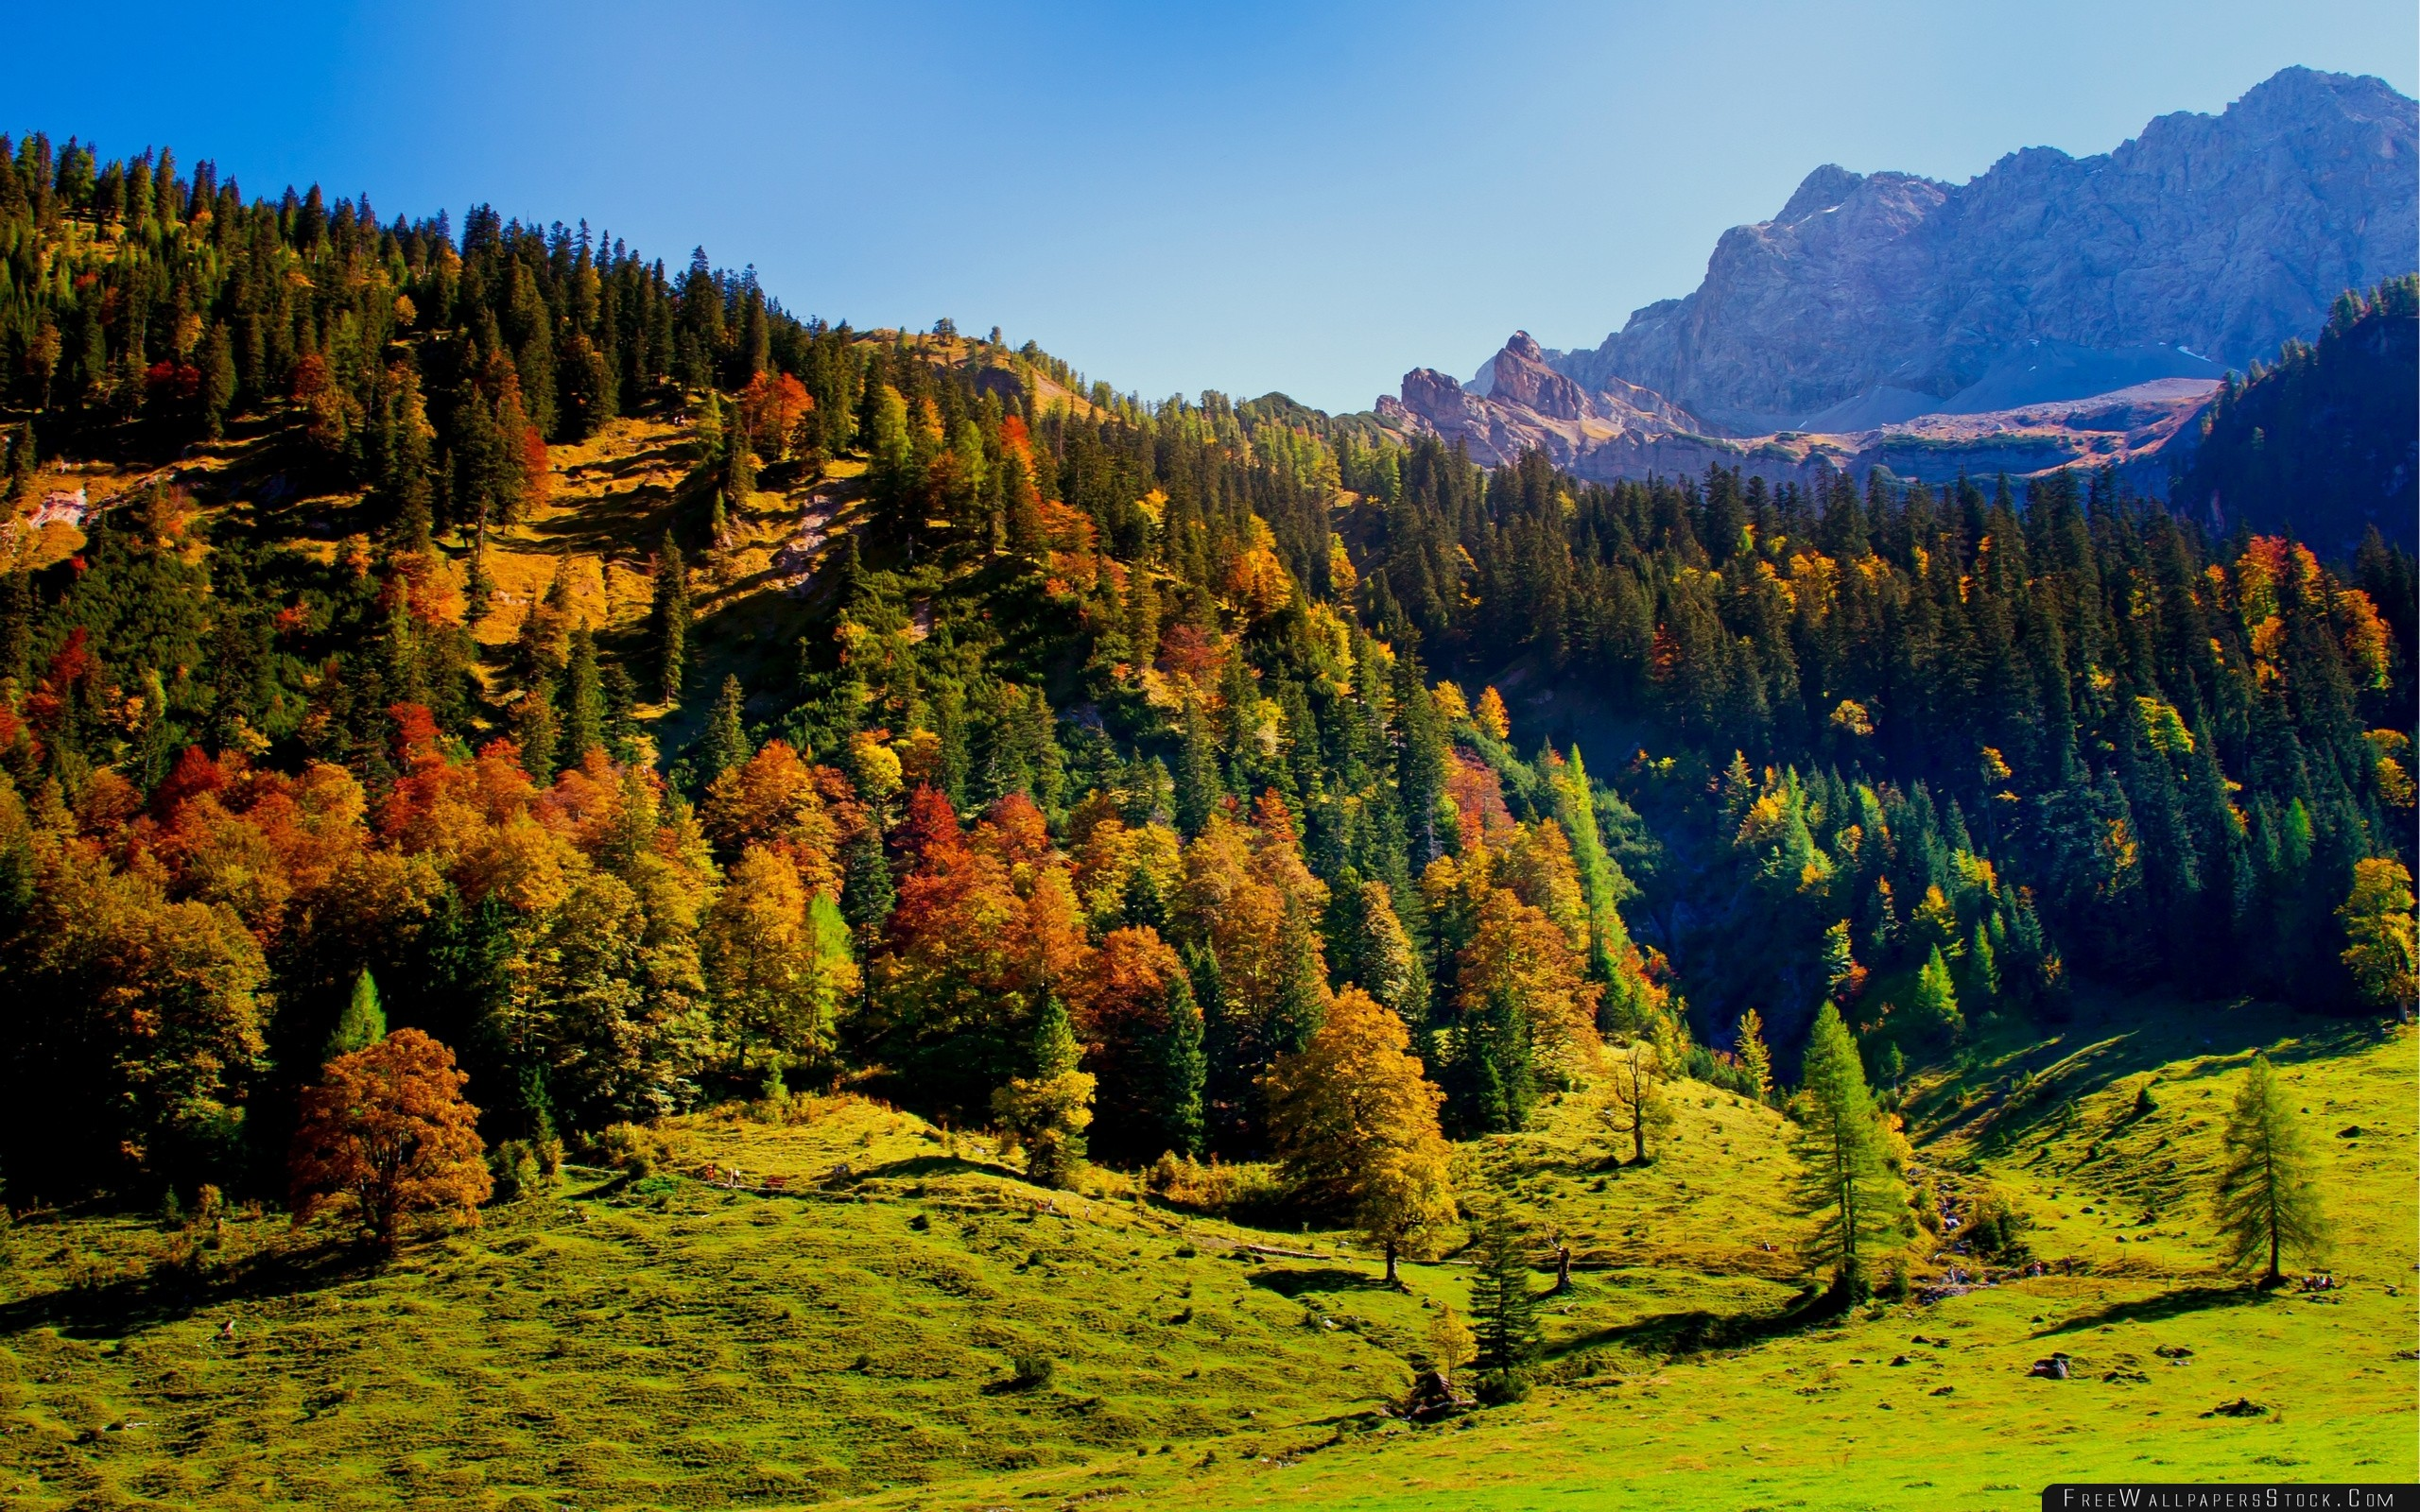 Download Free Wallpaper Wood Green Mountains Hills Relief Landscape Shadows Freshness Air